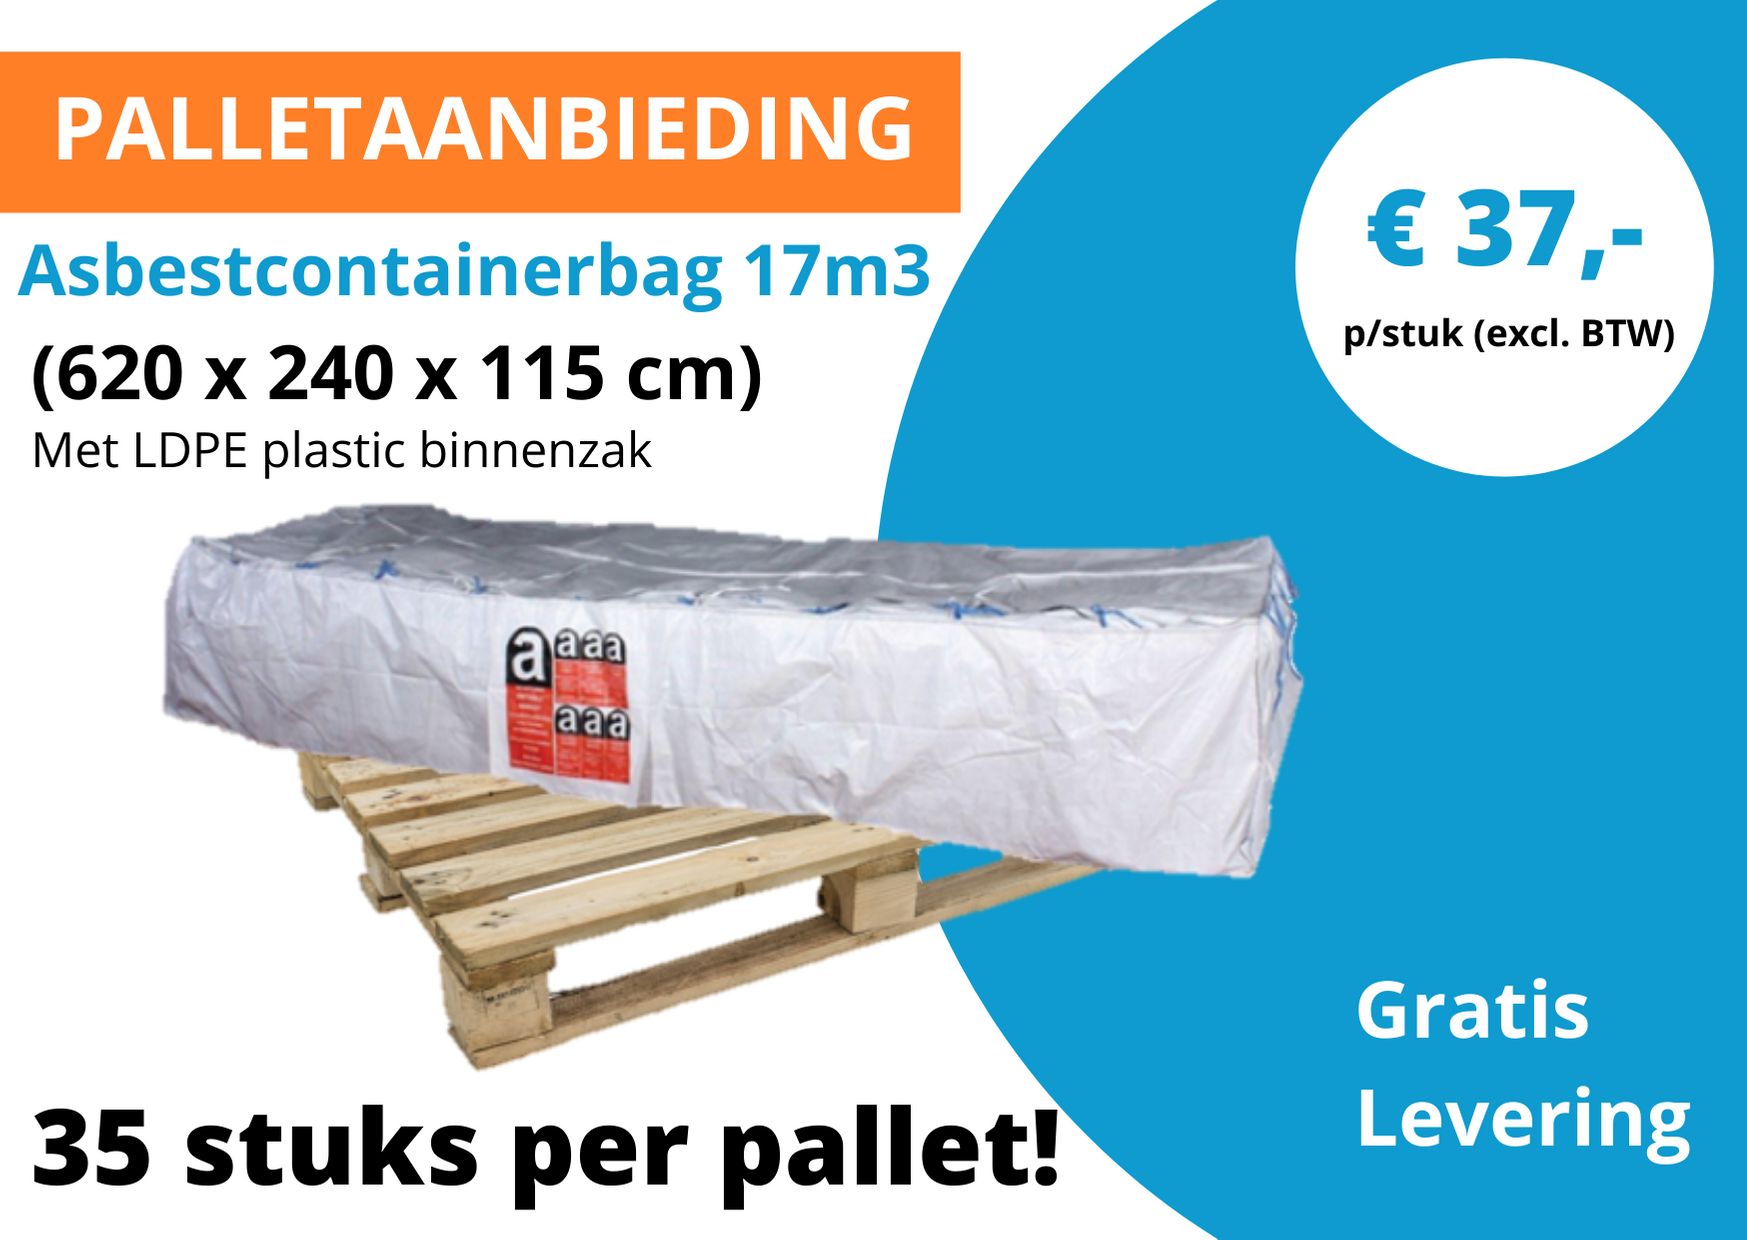 Asbestcontainerbag 17m3 palletaanbieding